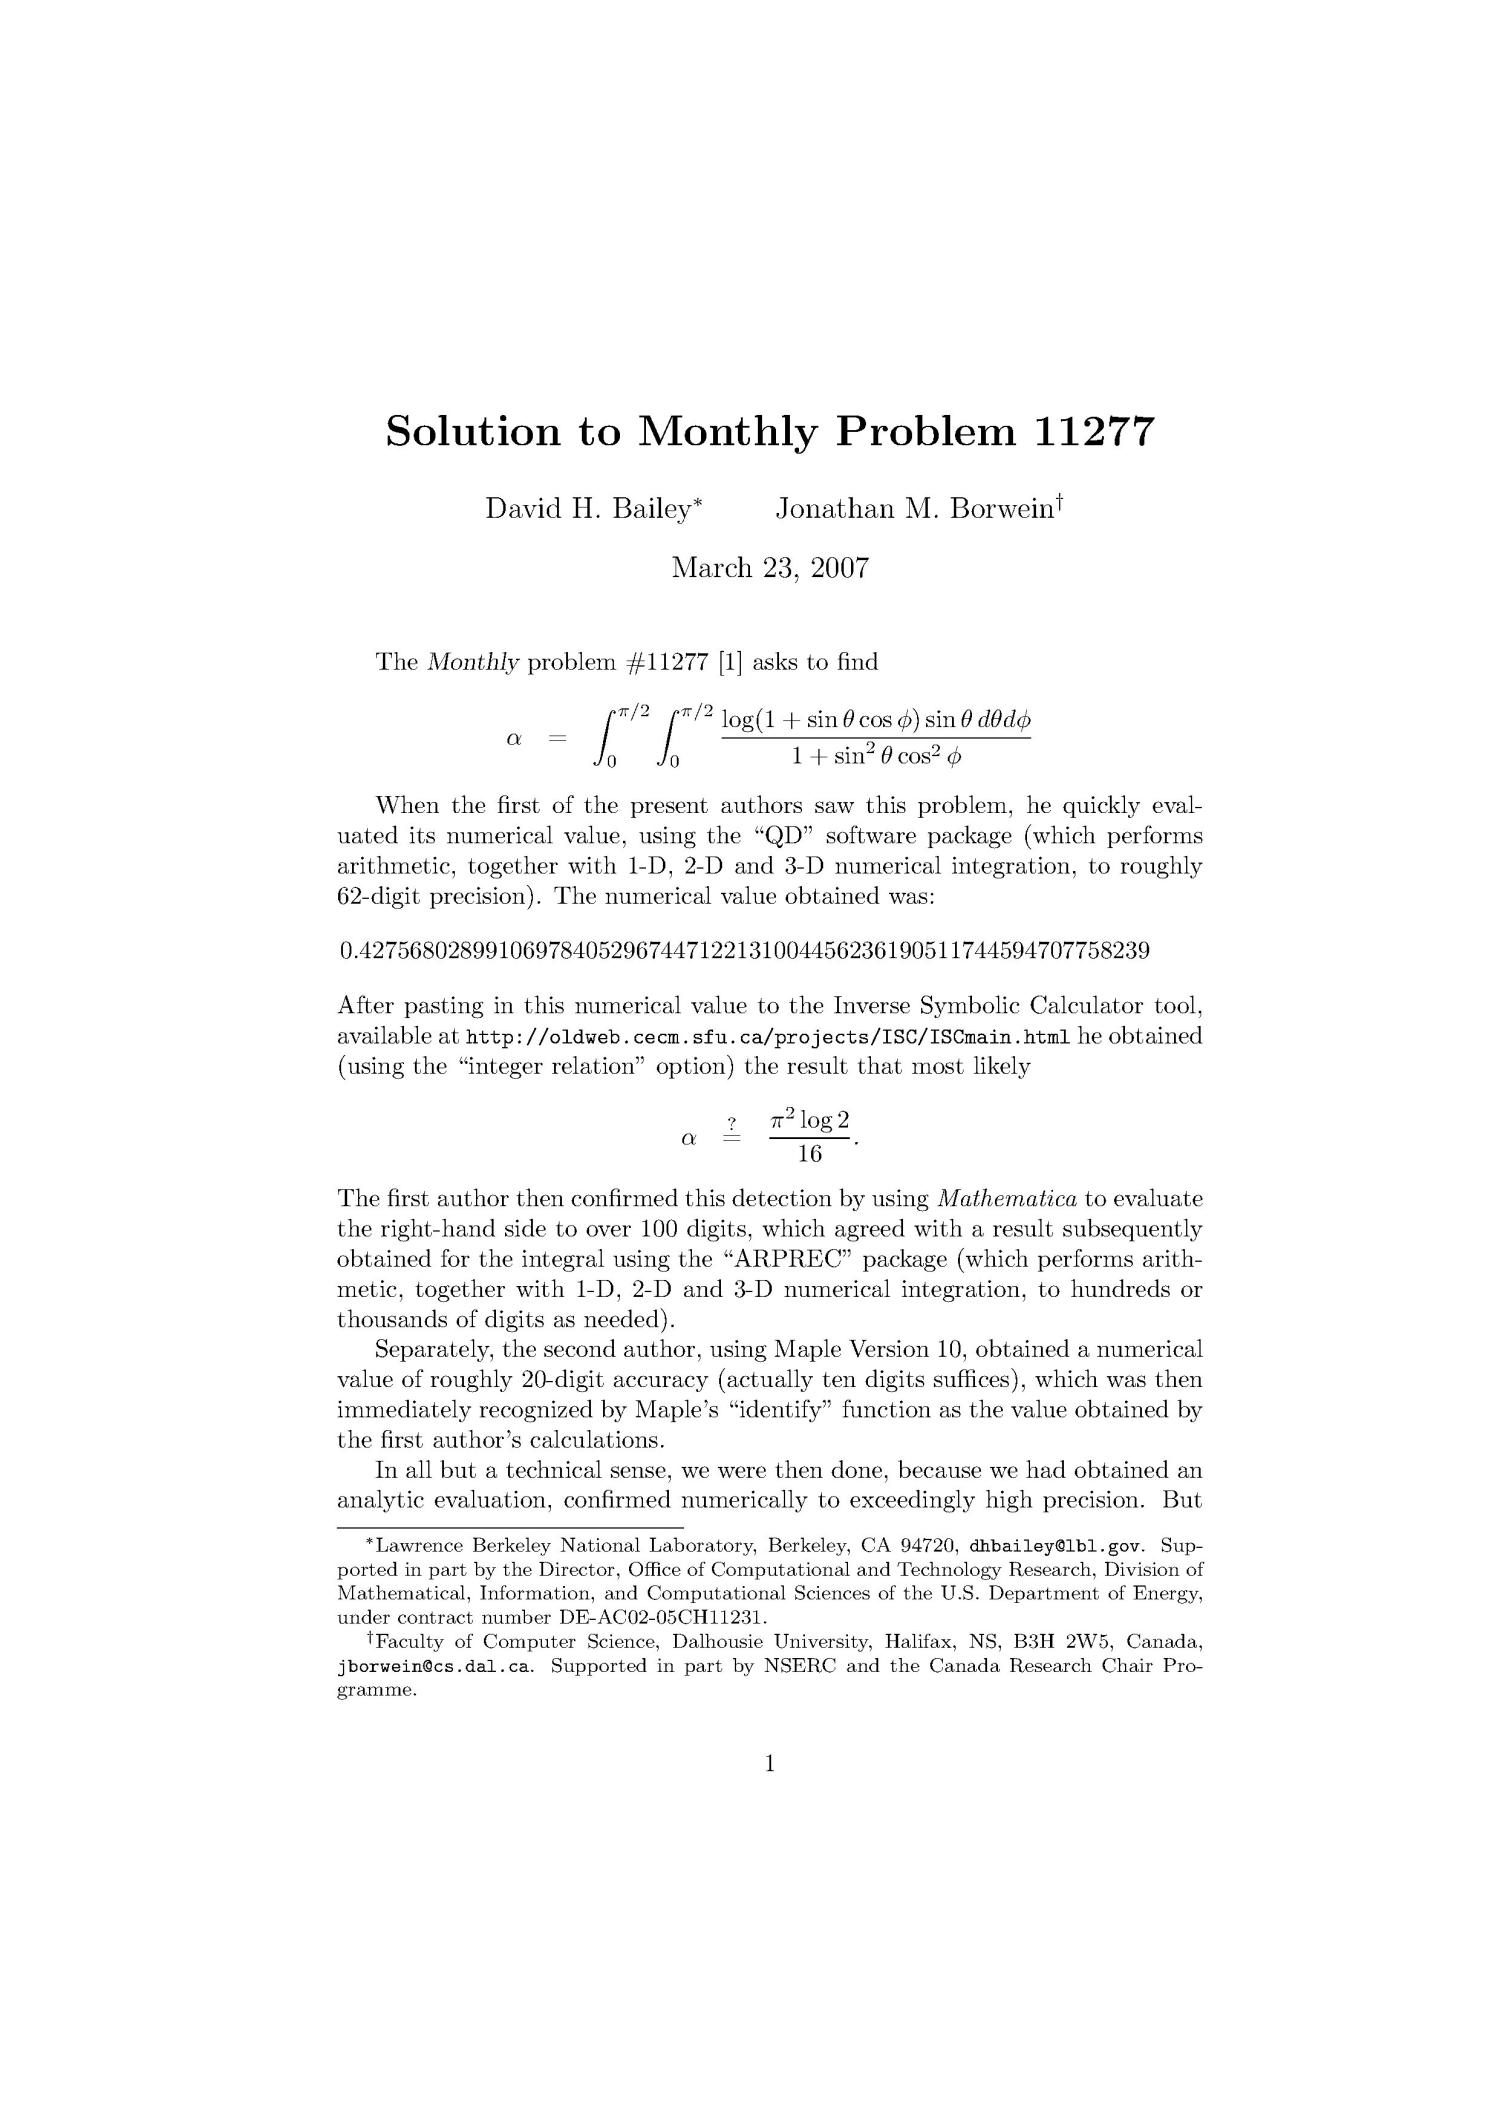 Solution to Monthly Problem 11277                                                                                                      [Sequence #]: 1 of 3